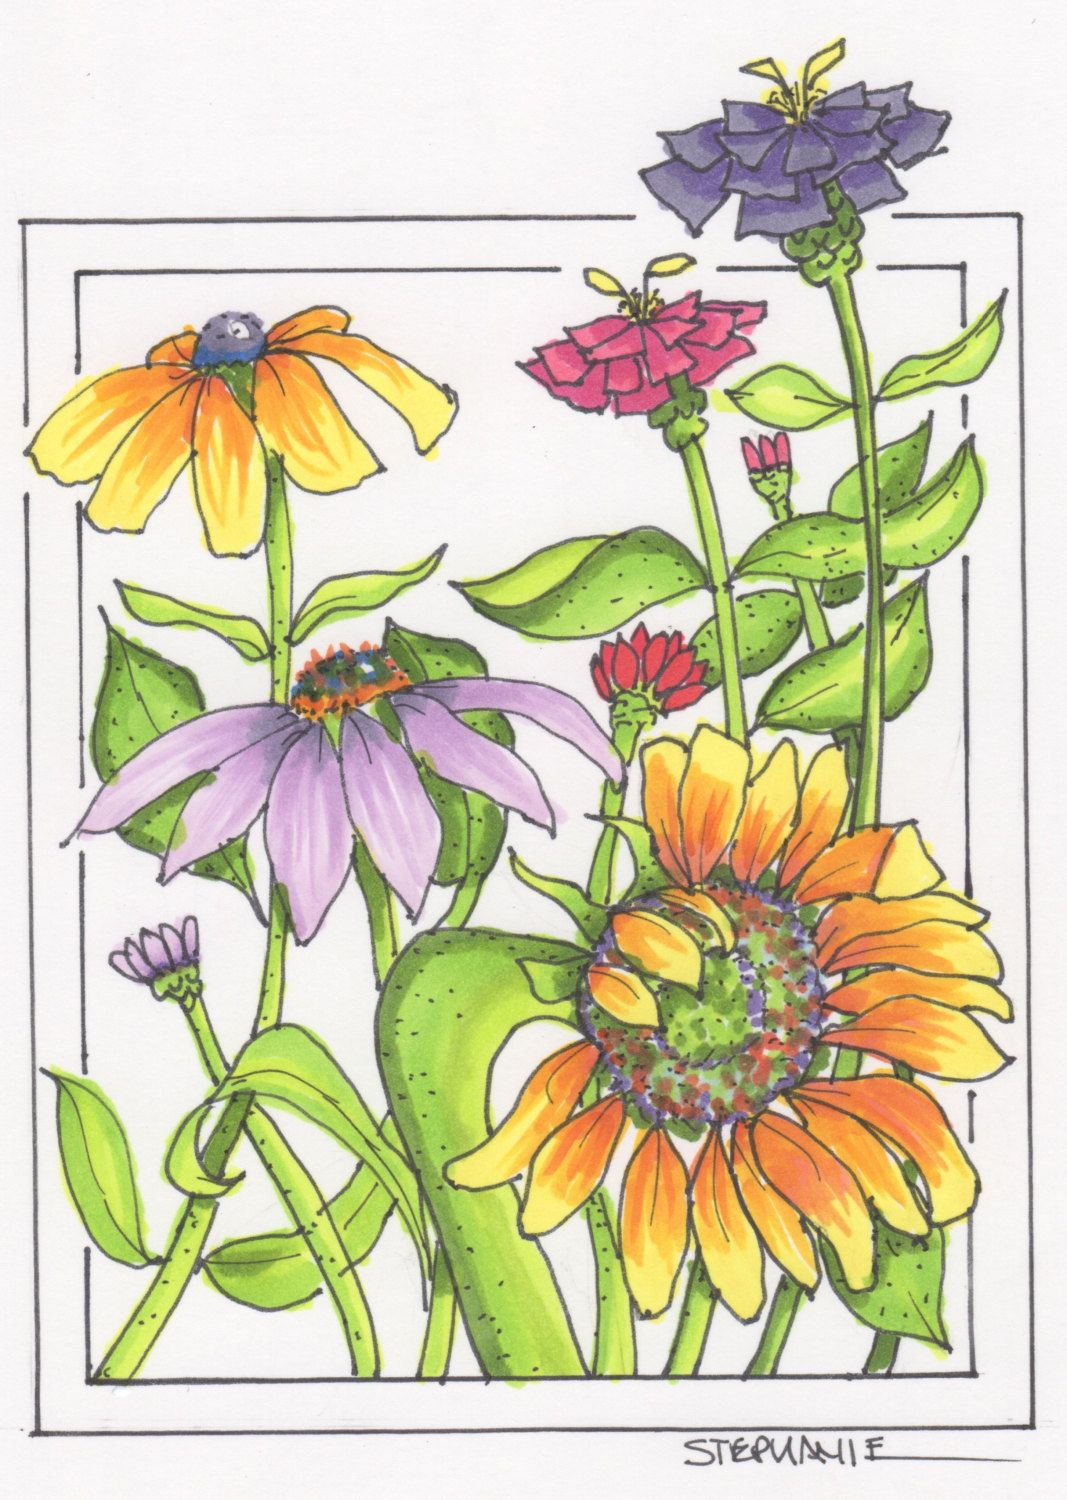 copic coloring sunflower and purple cone flower part 2 art print by ...